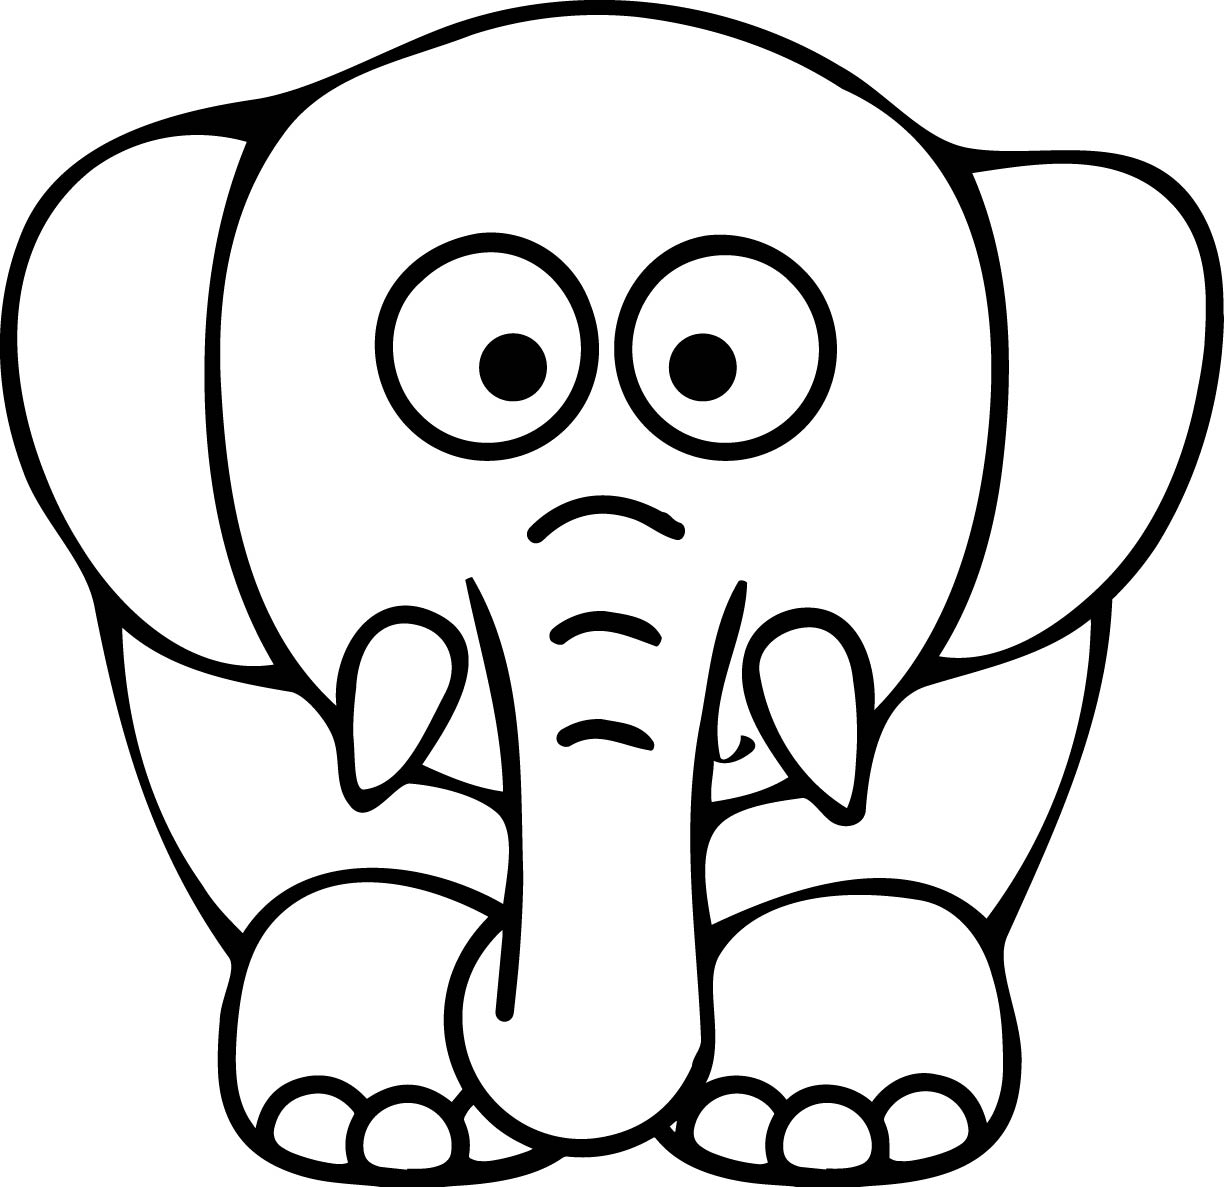 coloring sheets elephant elephant shape with patterns elephants adult coloring pages elephant sheets coloring